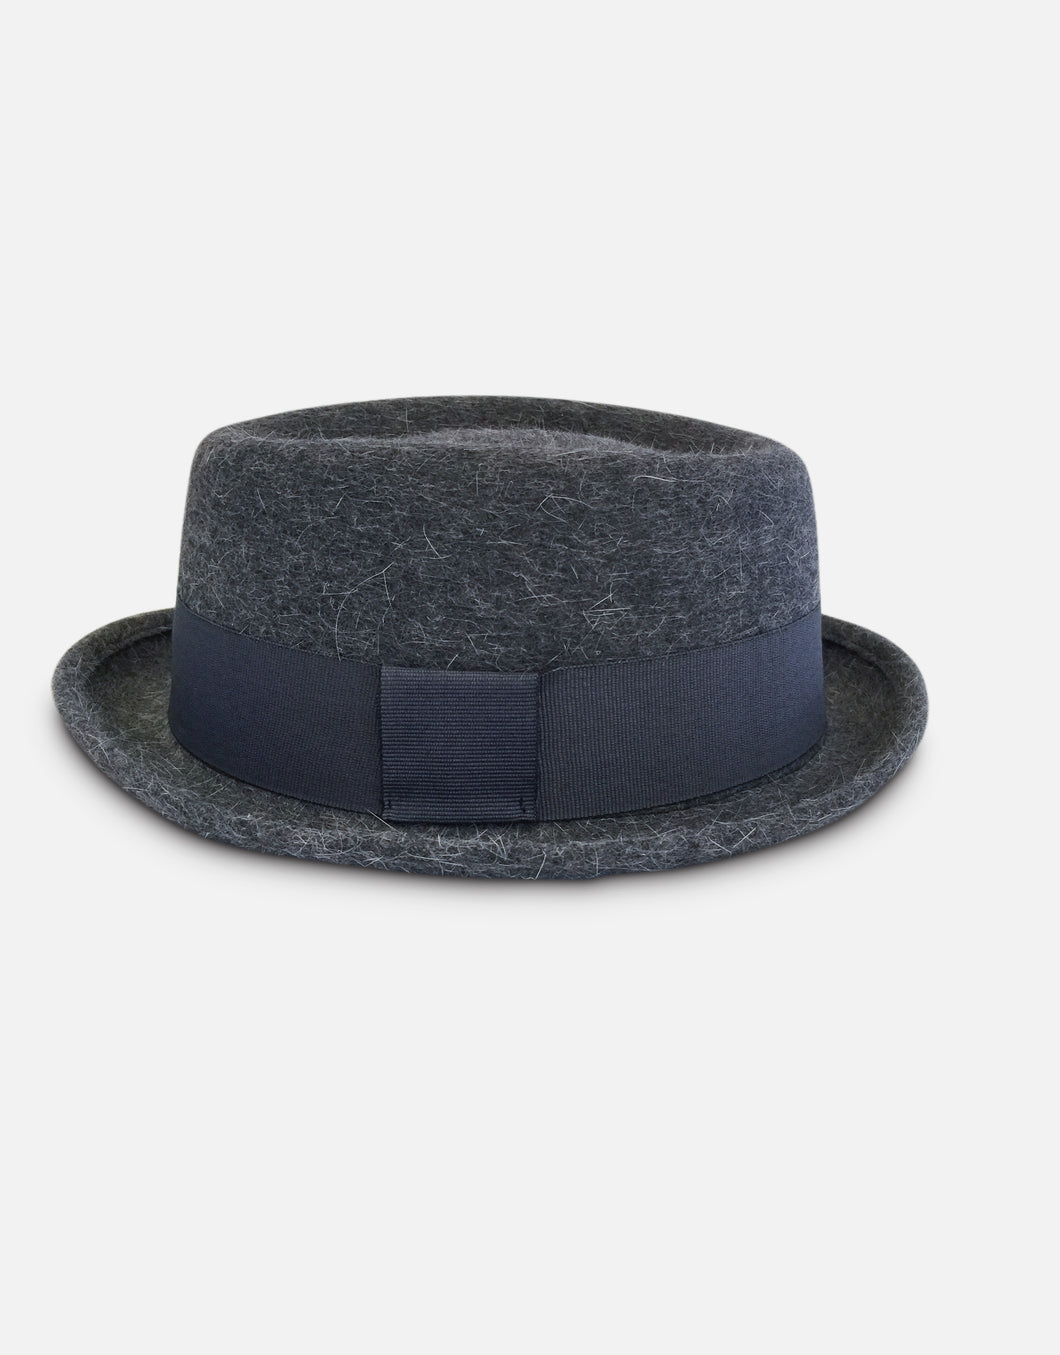 402 Rabbit Felt Pork Pie Hat, Grey Marl